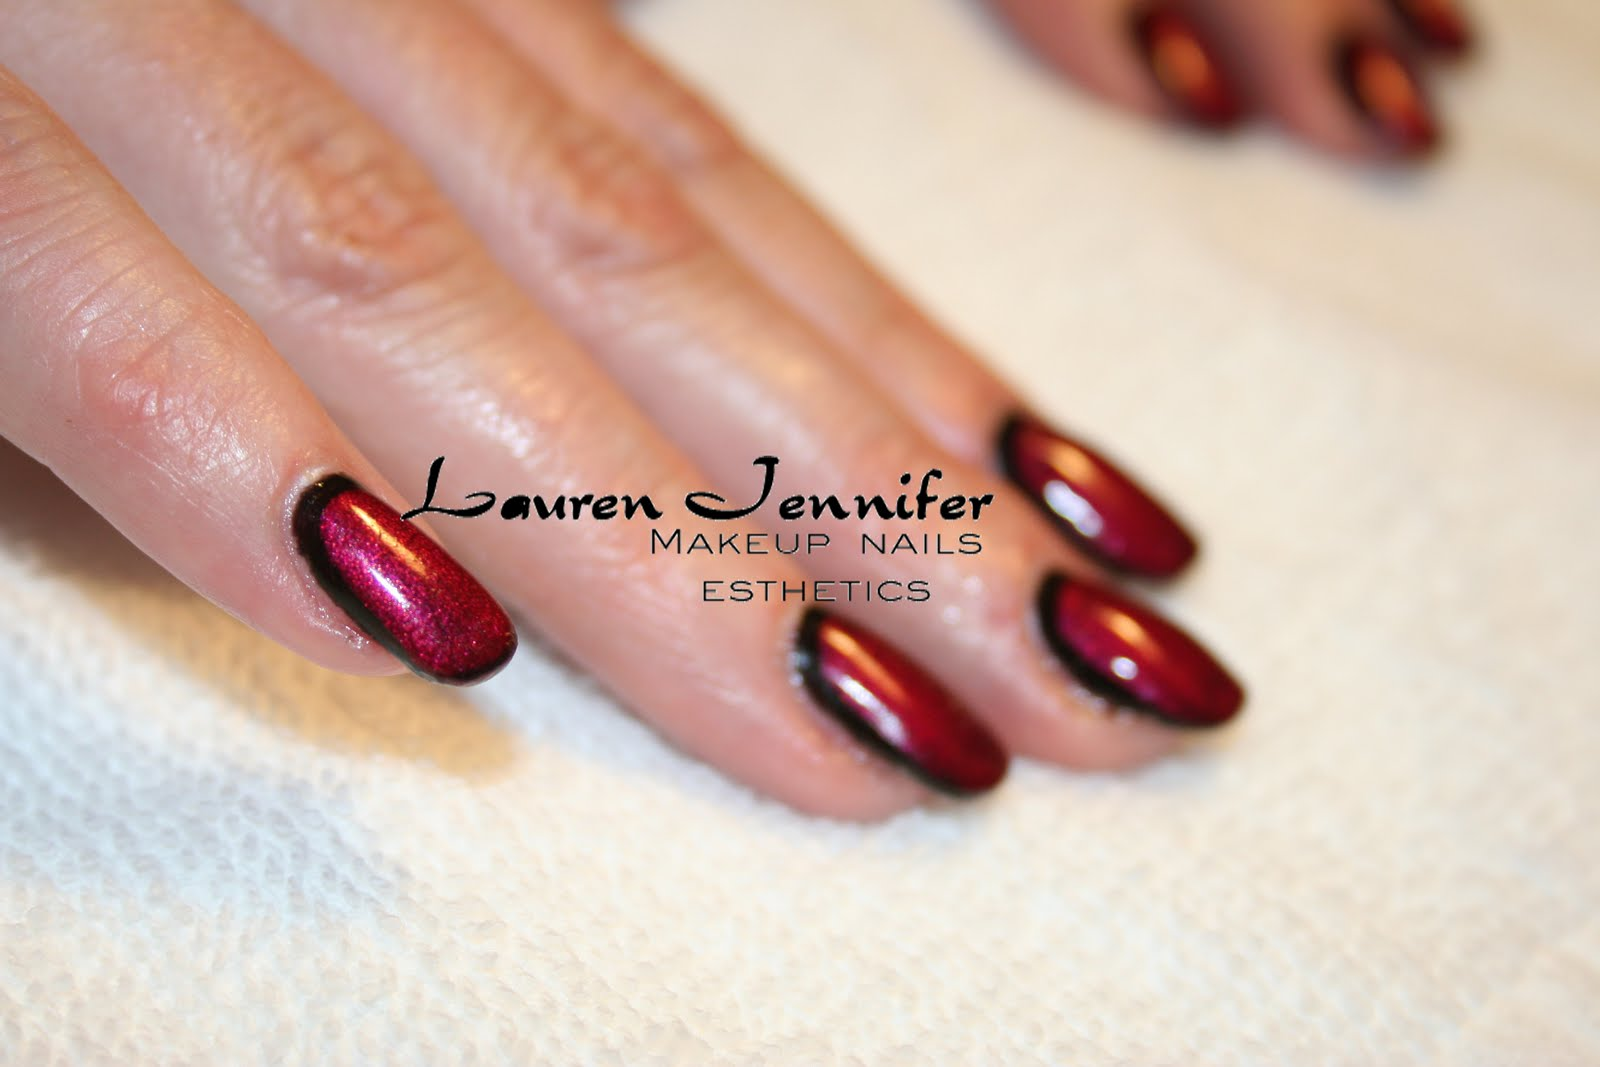 Binetti inspired nails in CND Shellac (Black Pool and Red Baroness